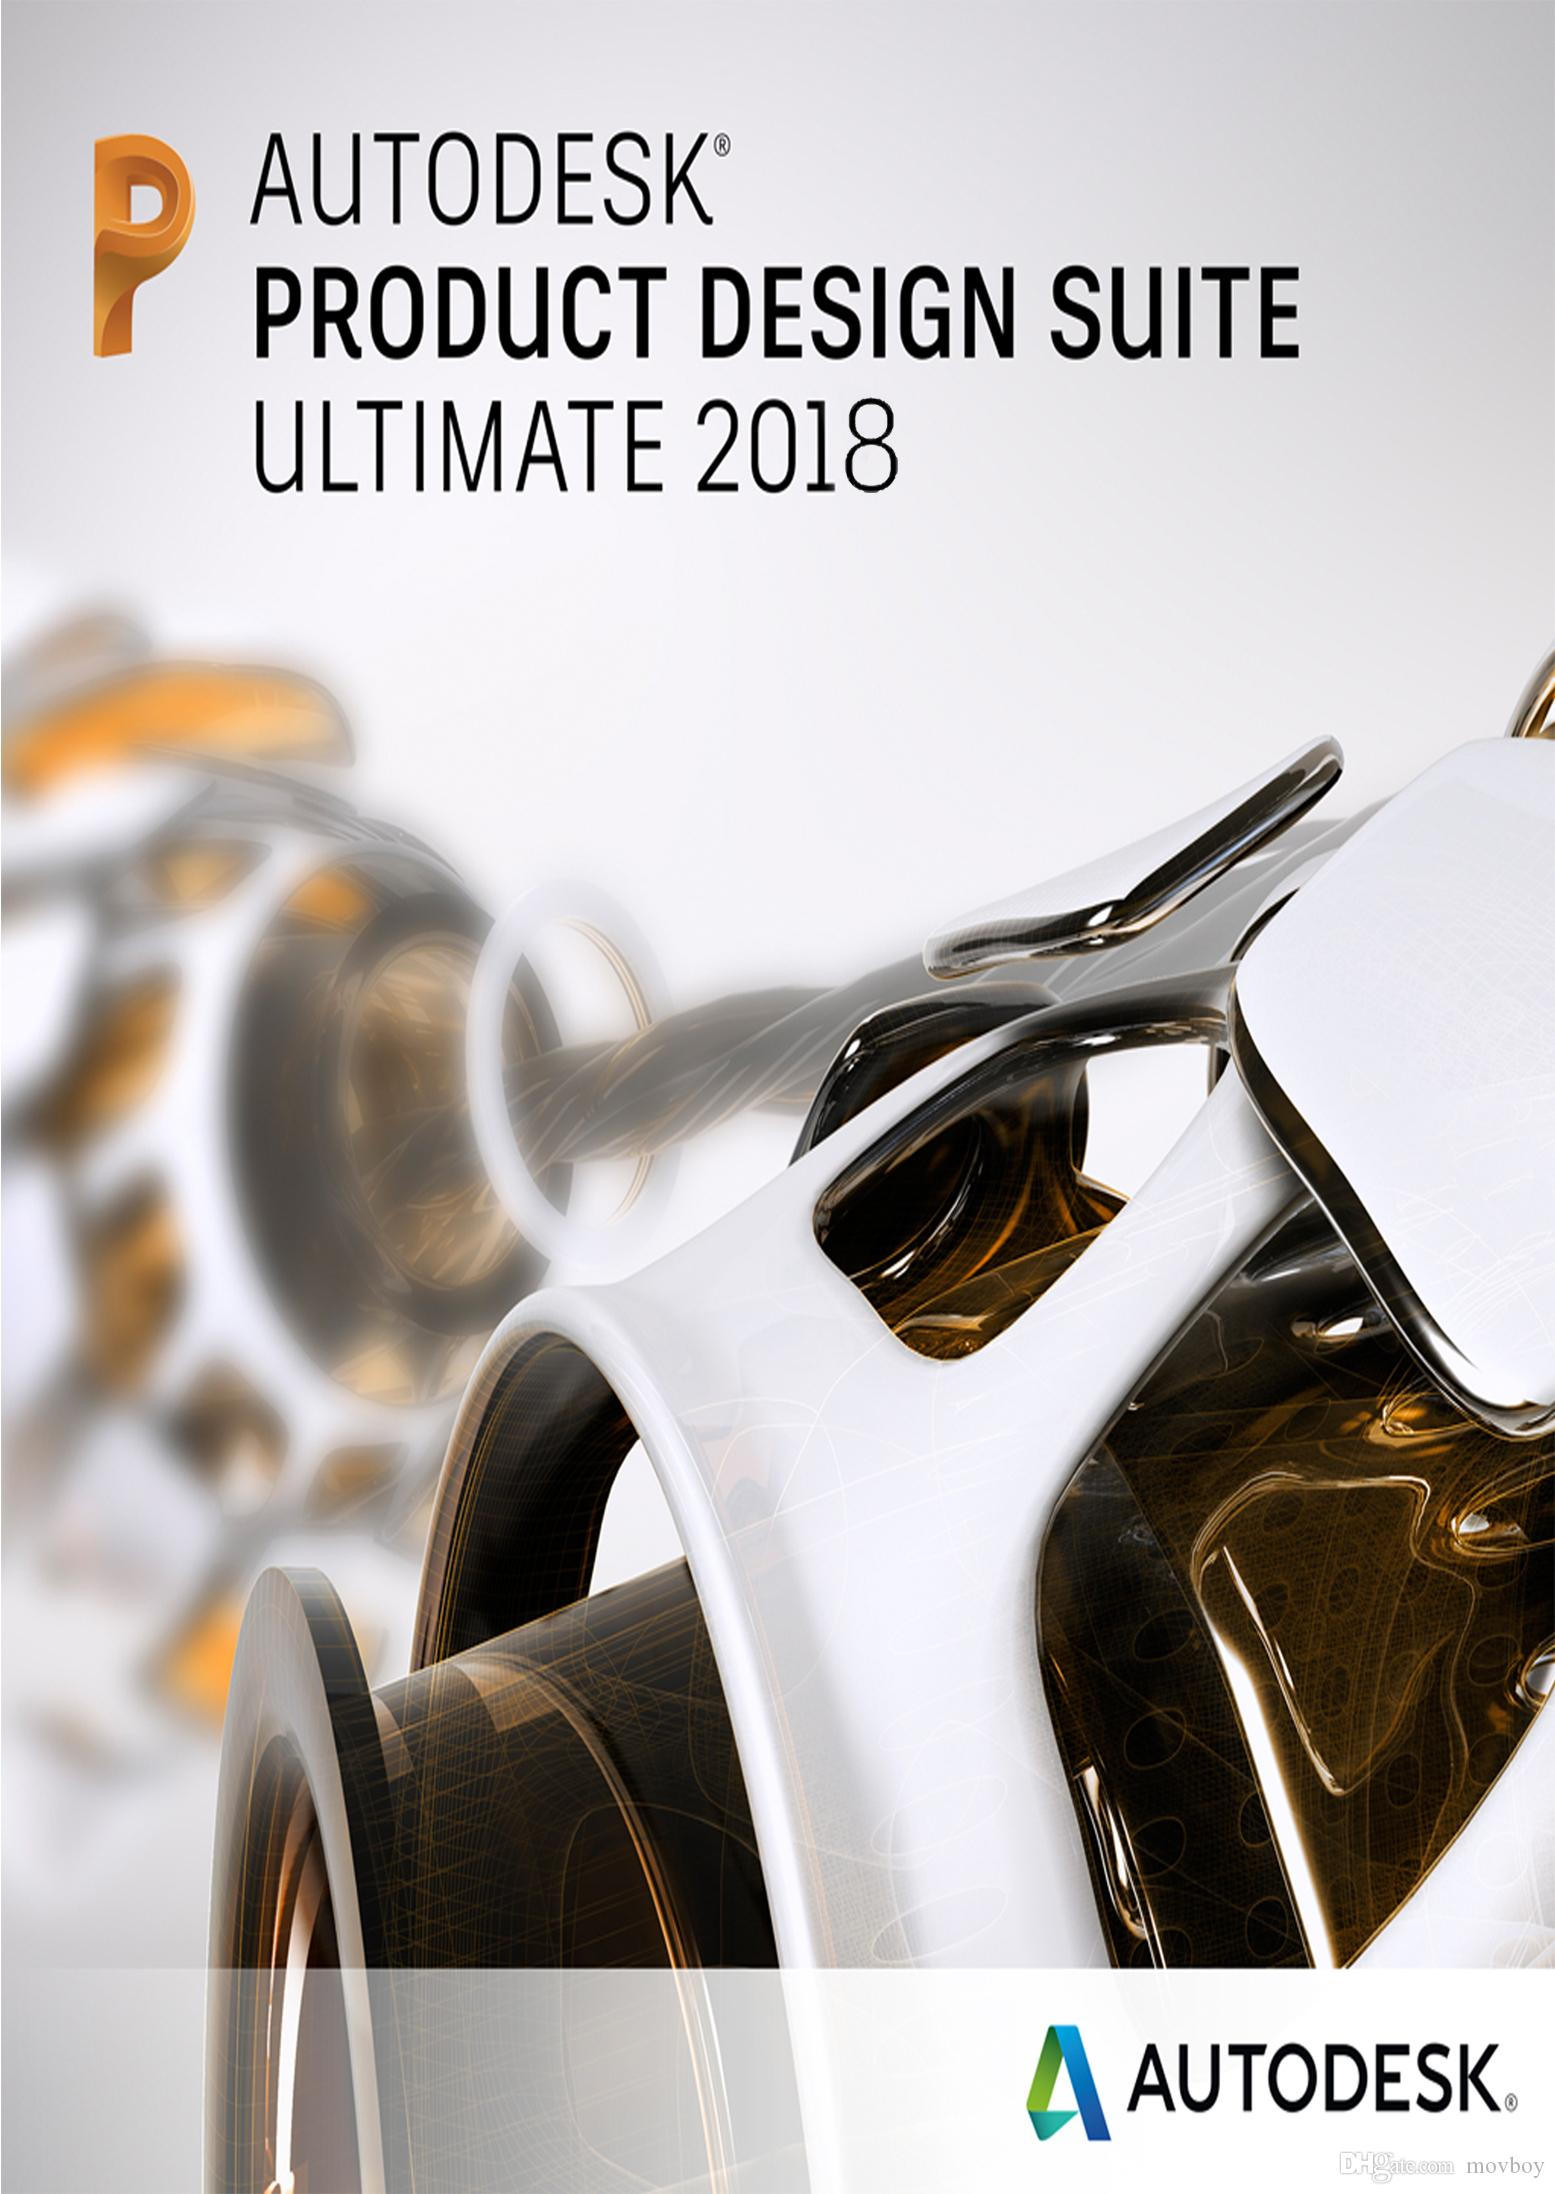 Buy Autodesk Building Design Suite Ultimate 2018 Cheap